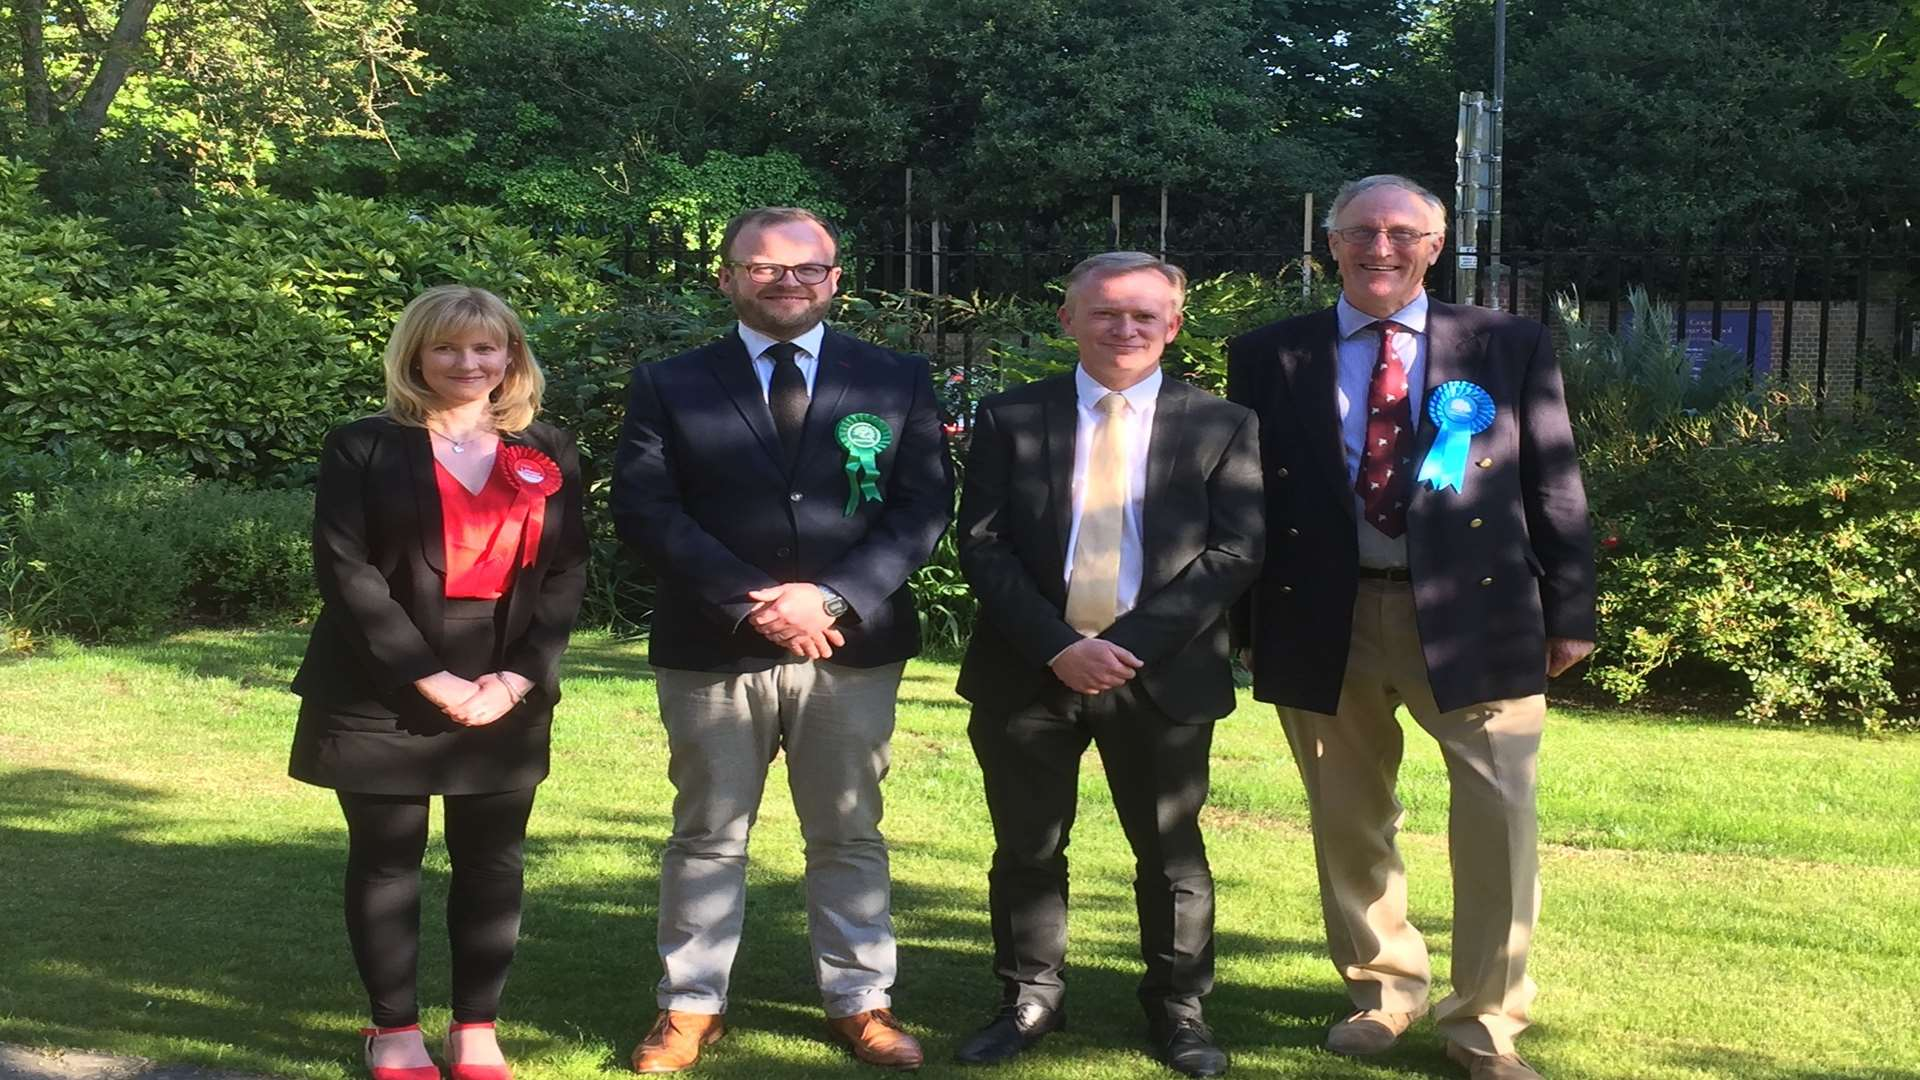 Labour candidate Rosie Duffield was joined by Henry Stanton of the Green Party, Lib Dem James Flanagan and Conservative Sir Julian Brazier,